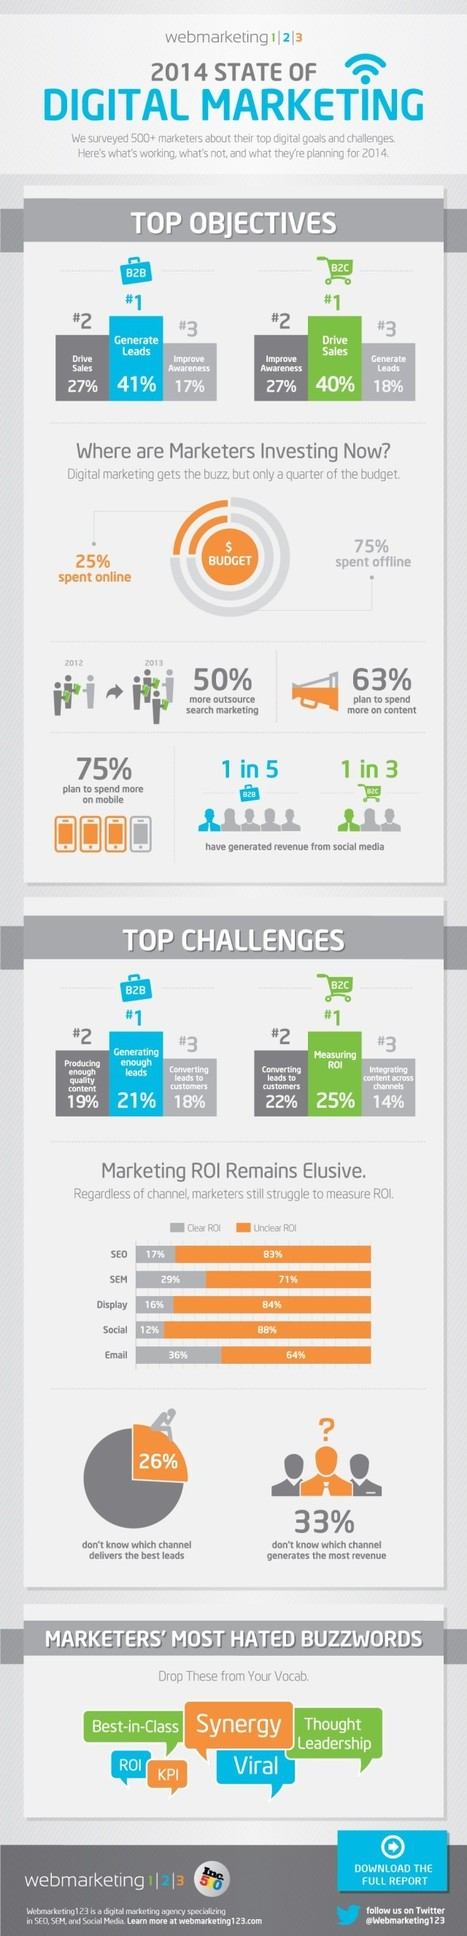 Infographic: 2014 State of Digital Marketing | JOIN SCOOP.IT AND FOLLOW ME ON SCOOP.IT | Scoop.it